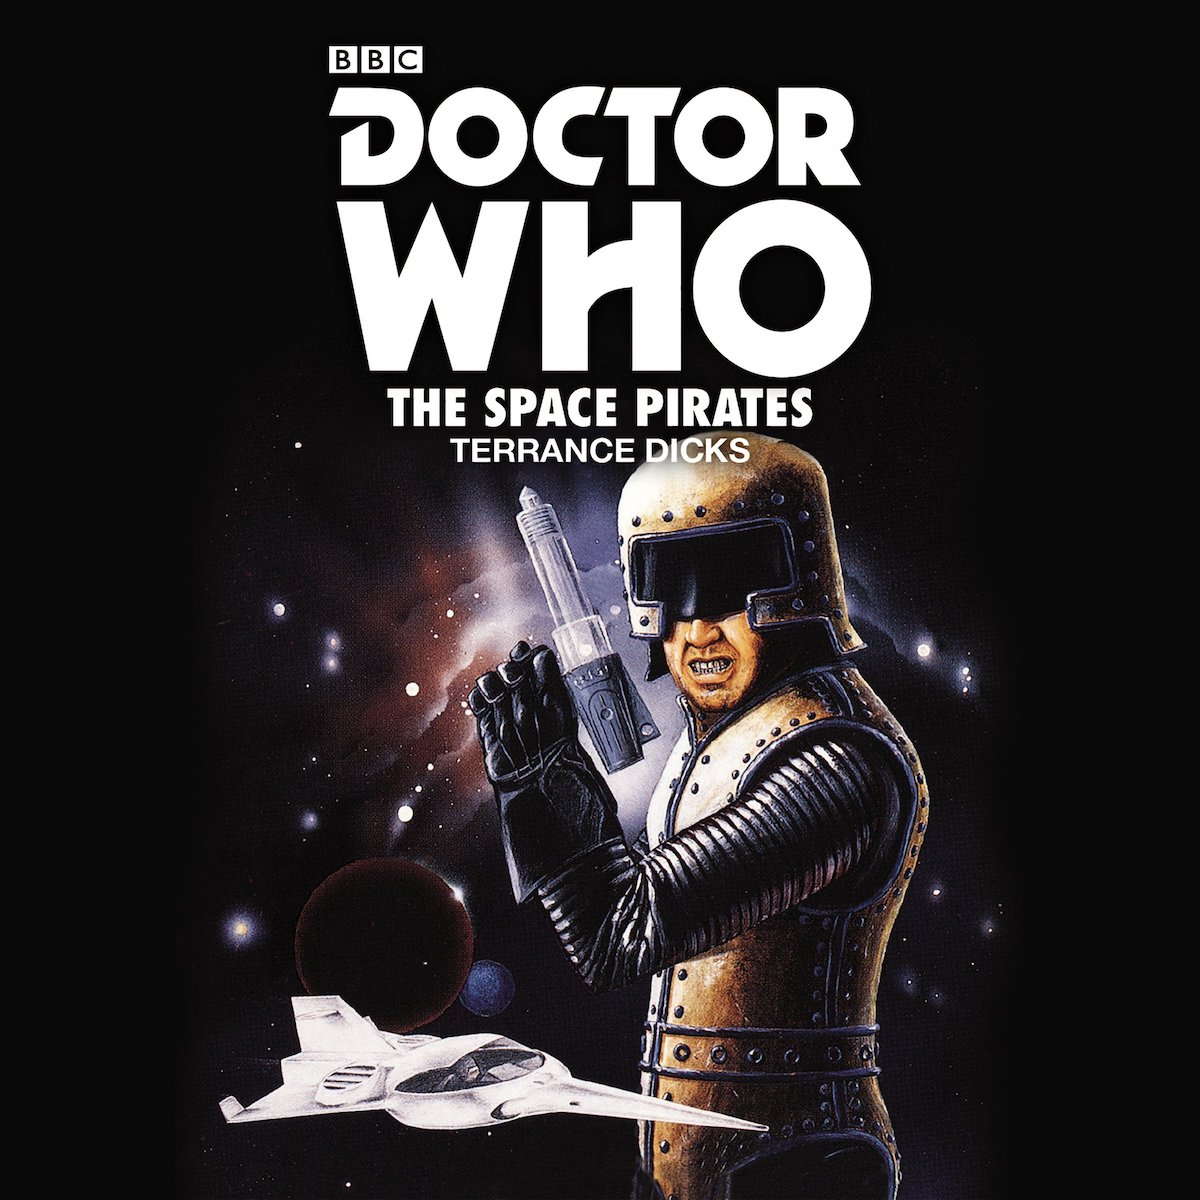 The Space Pirates